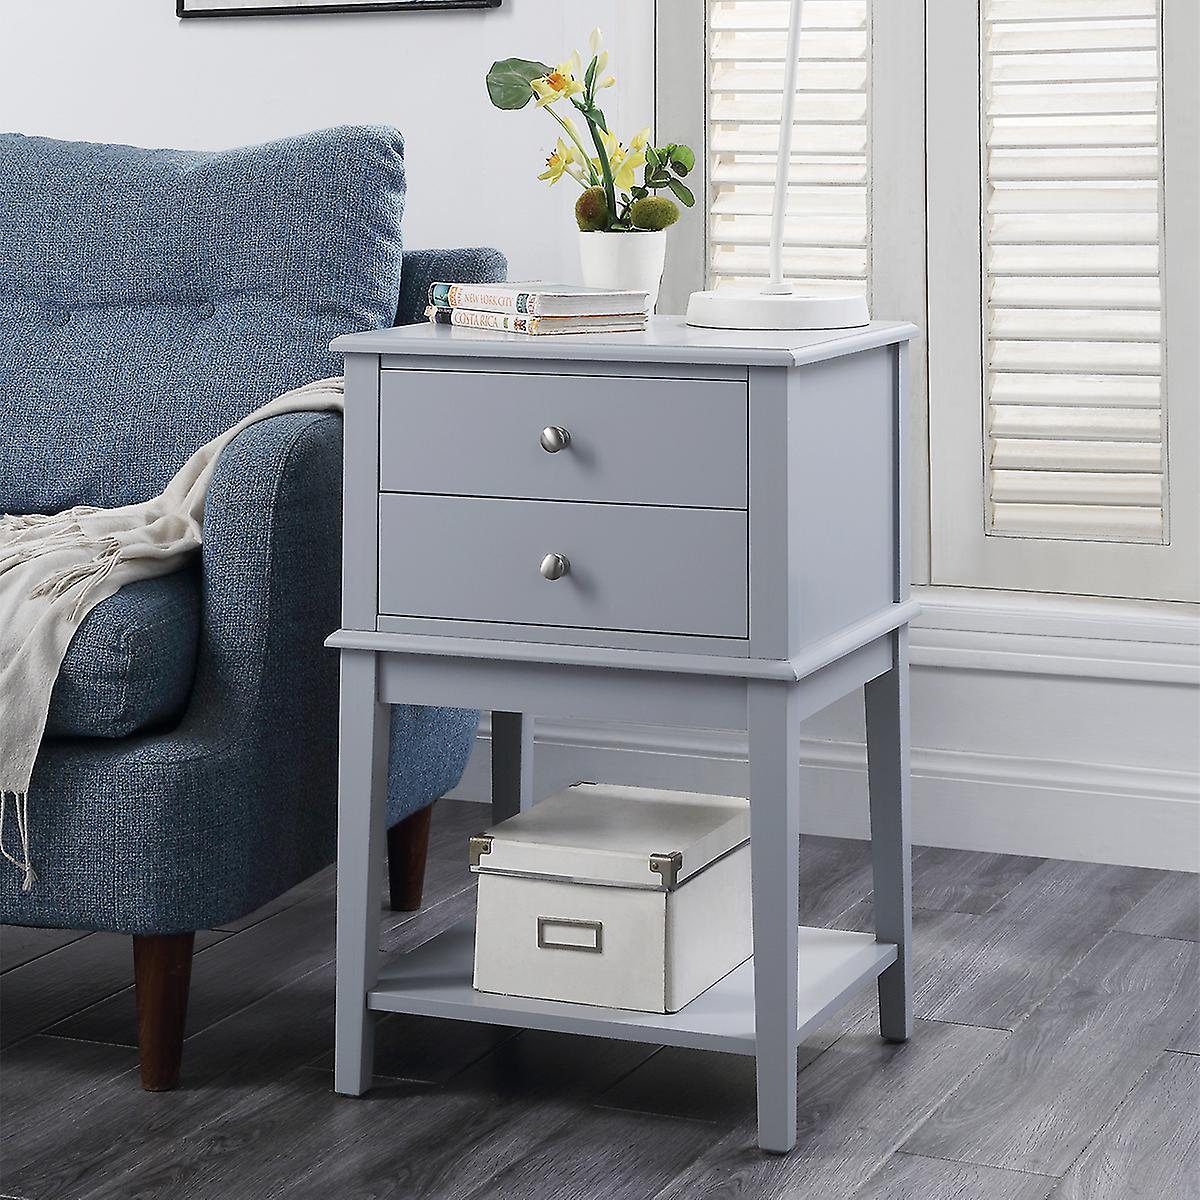 Charles Bentley 2 Drawer Wooden Bed Side Coffee/Lamp Table/Storage/Cabinet Grey